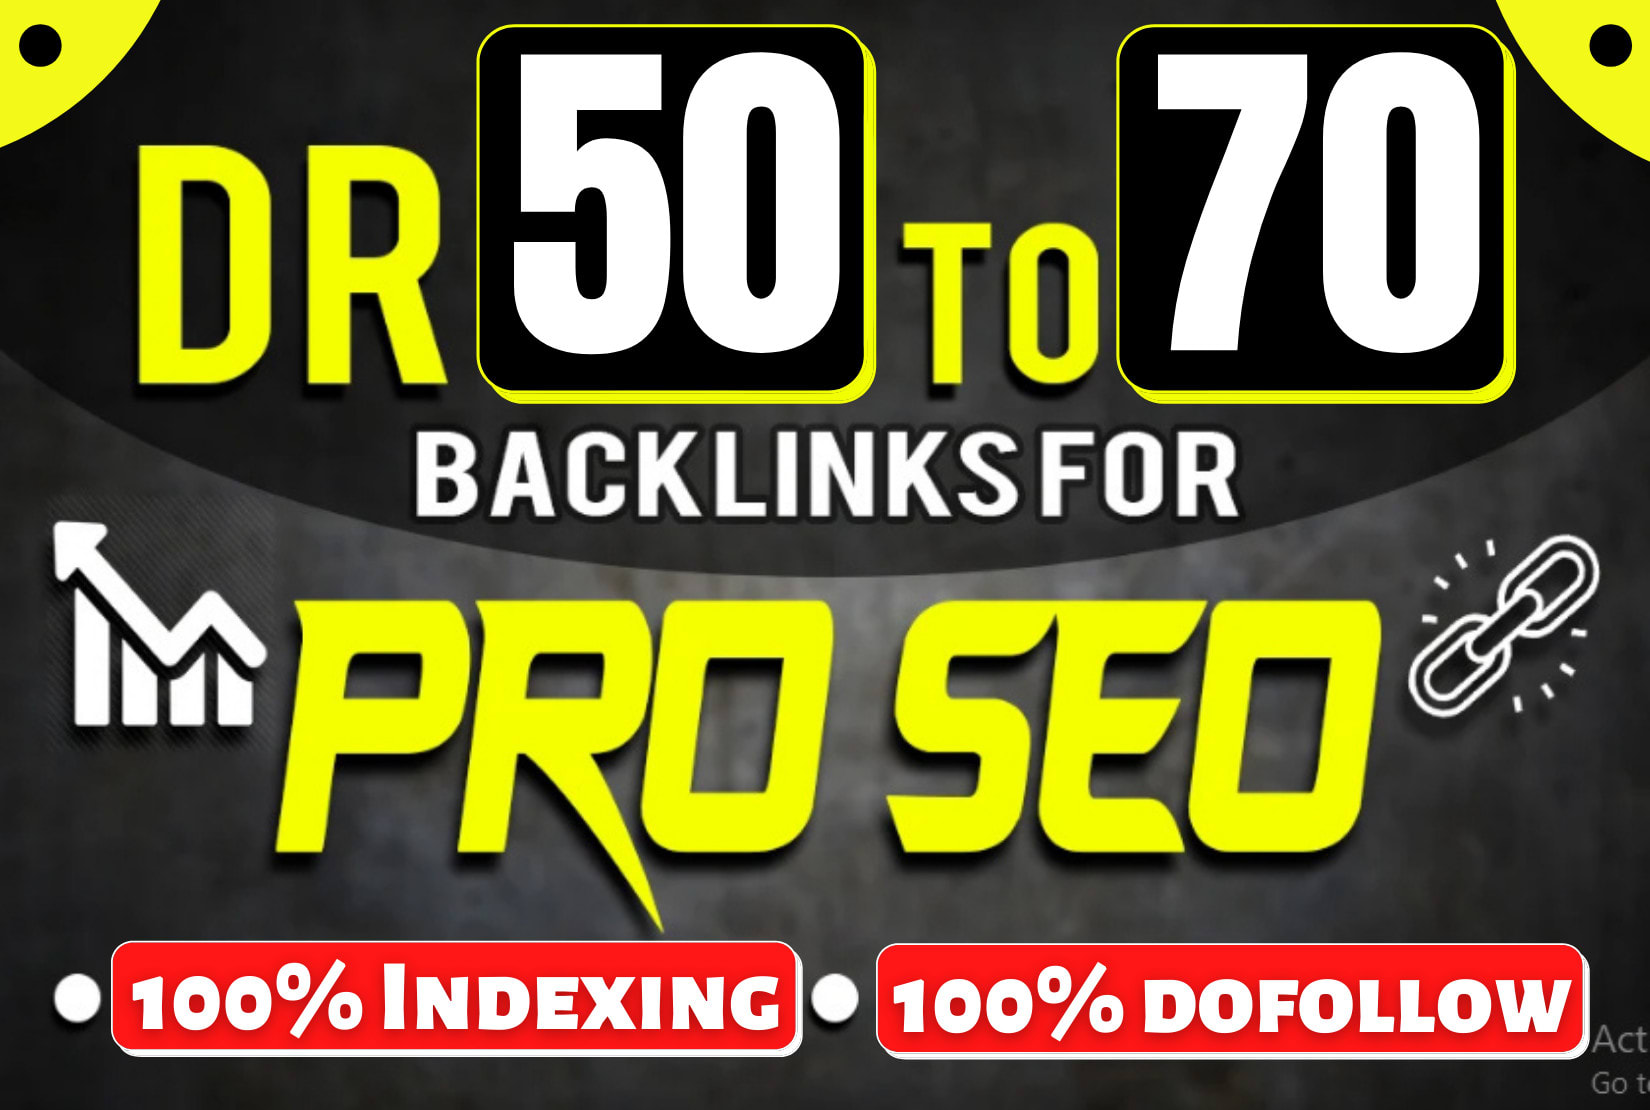 Get 100 PBN DR 50 to 70 home page high quality permanent Do follow backlinks